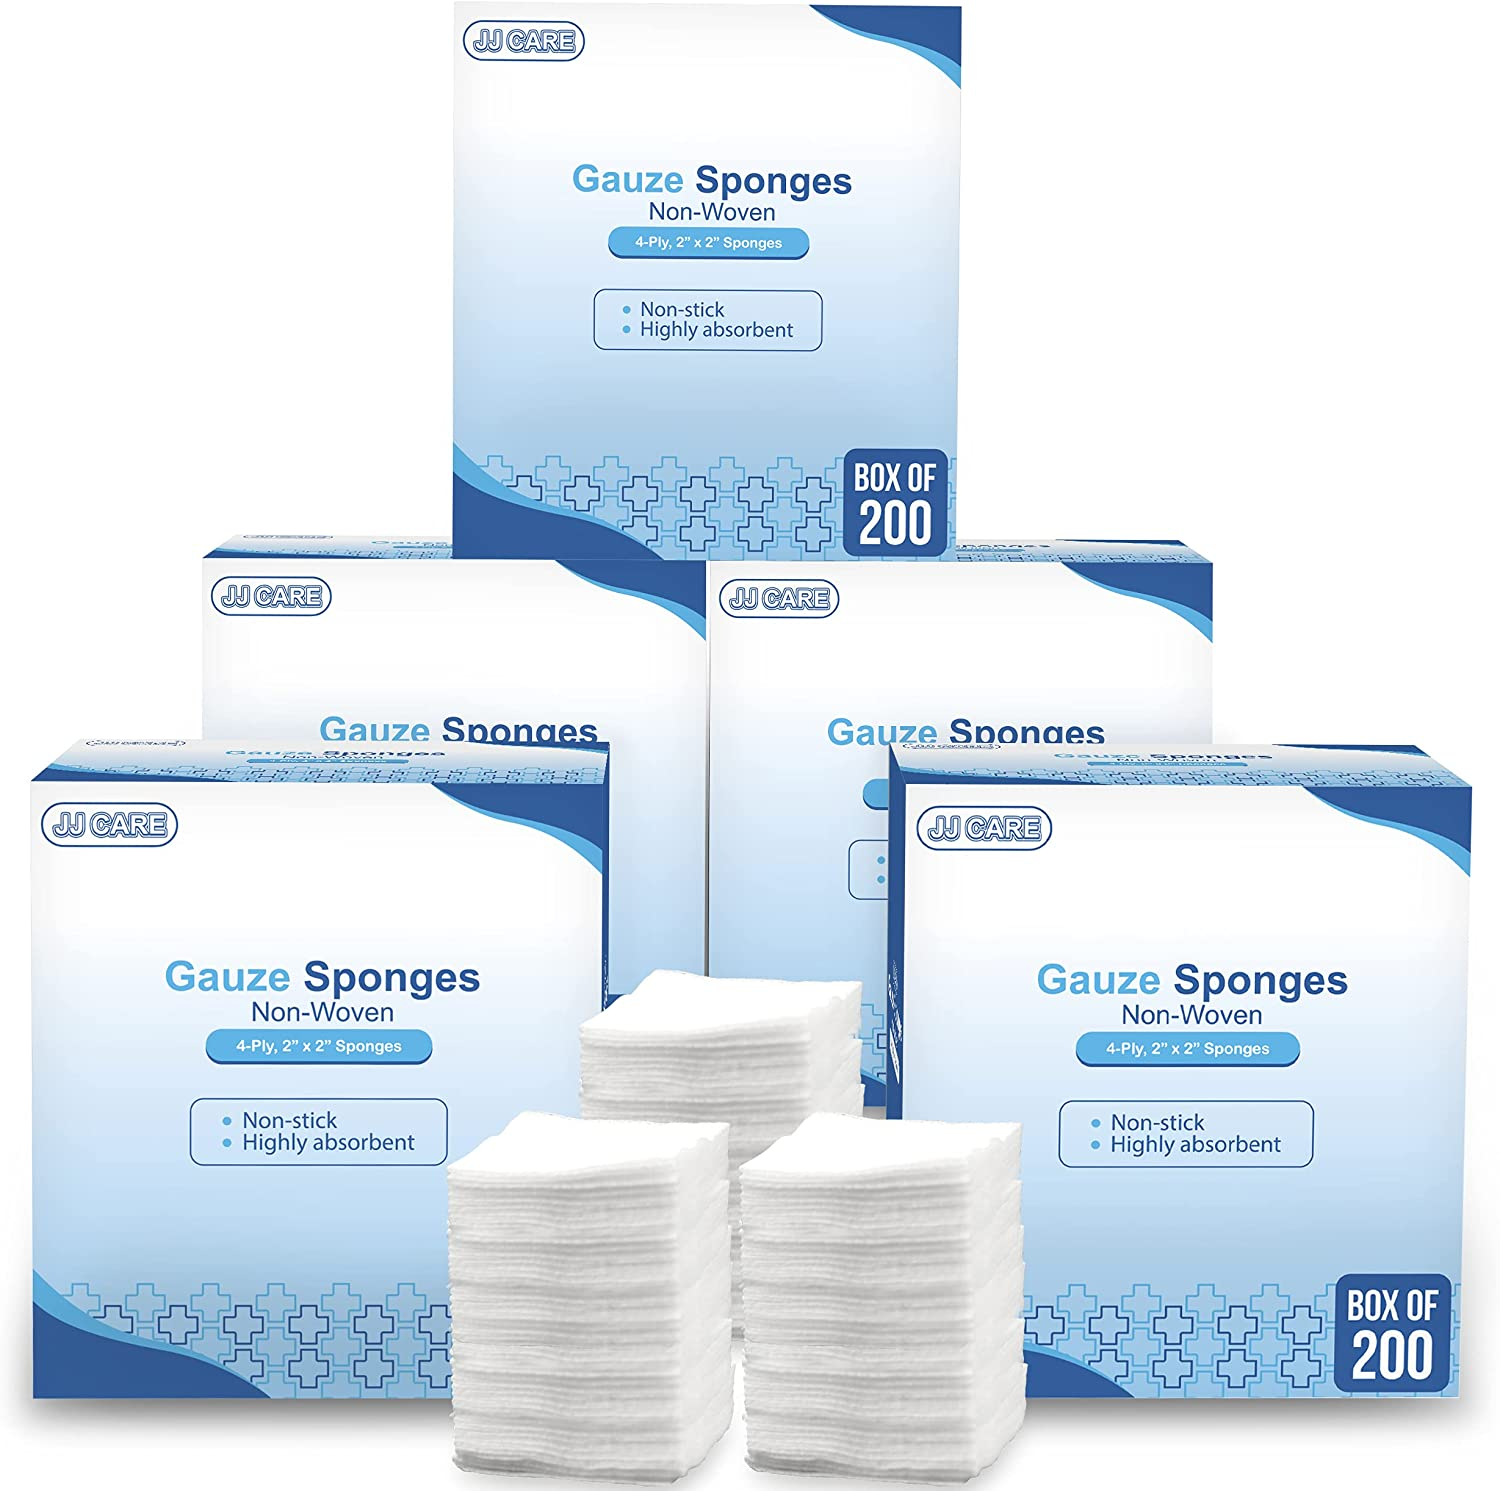 JJ CARE 2x2 Non Woven Gauze Large-scale sale Sponges Thicker Max 55% OFF of 1000 Pack 40% N